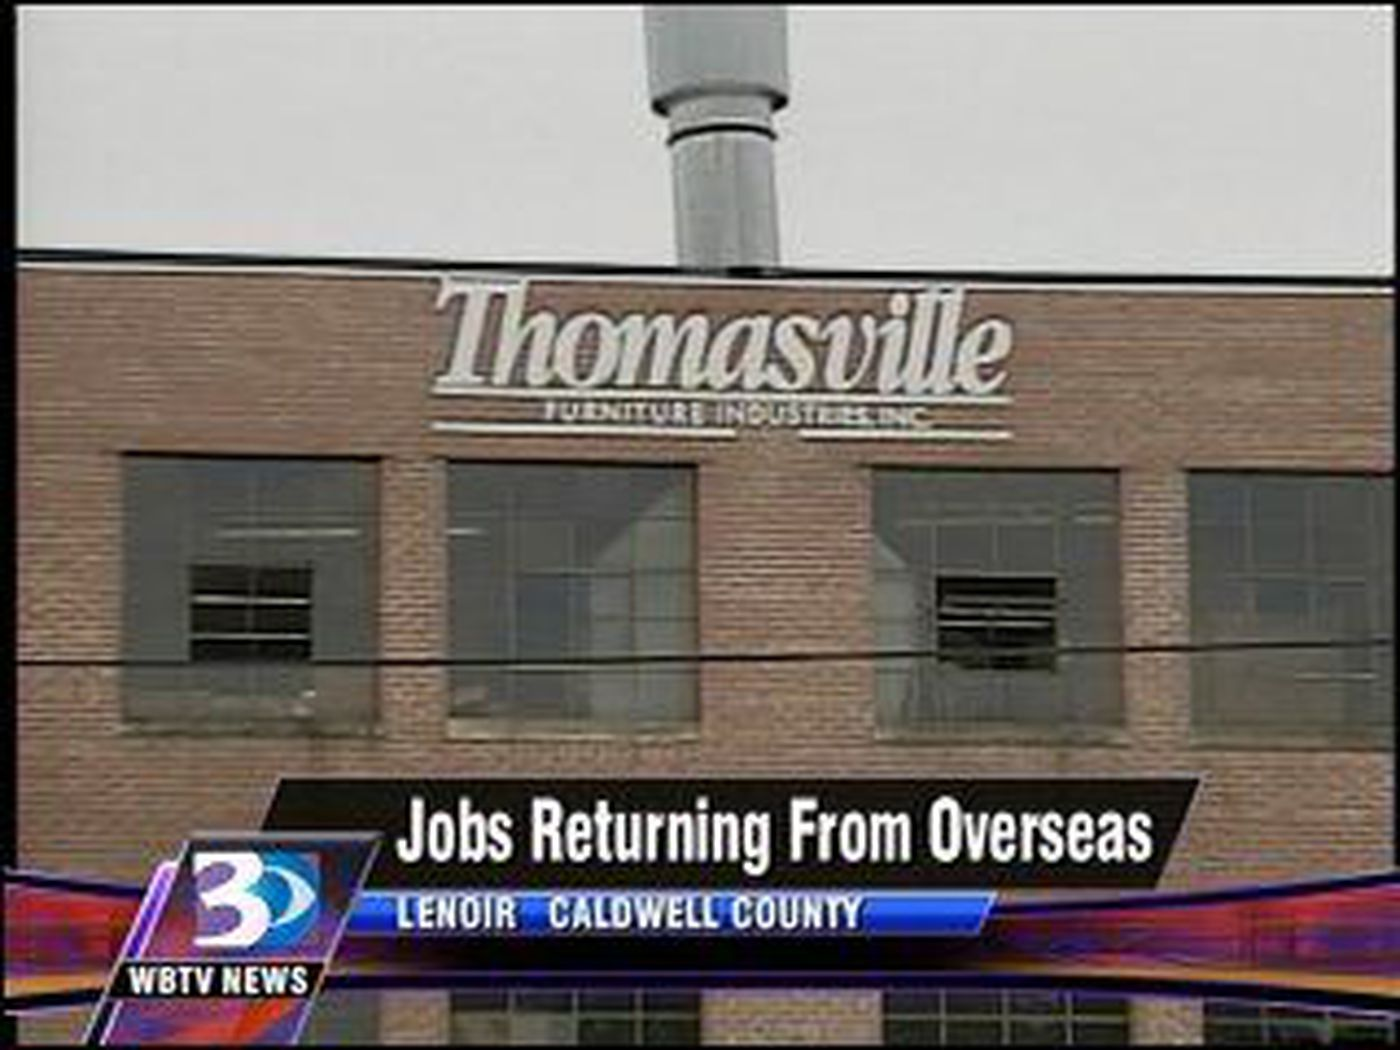 Thomasville Furniture Planning To Add Jobs